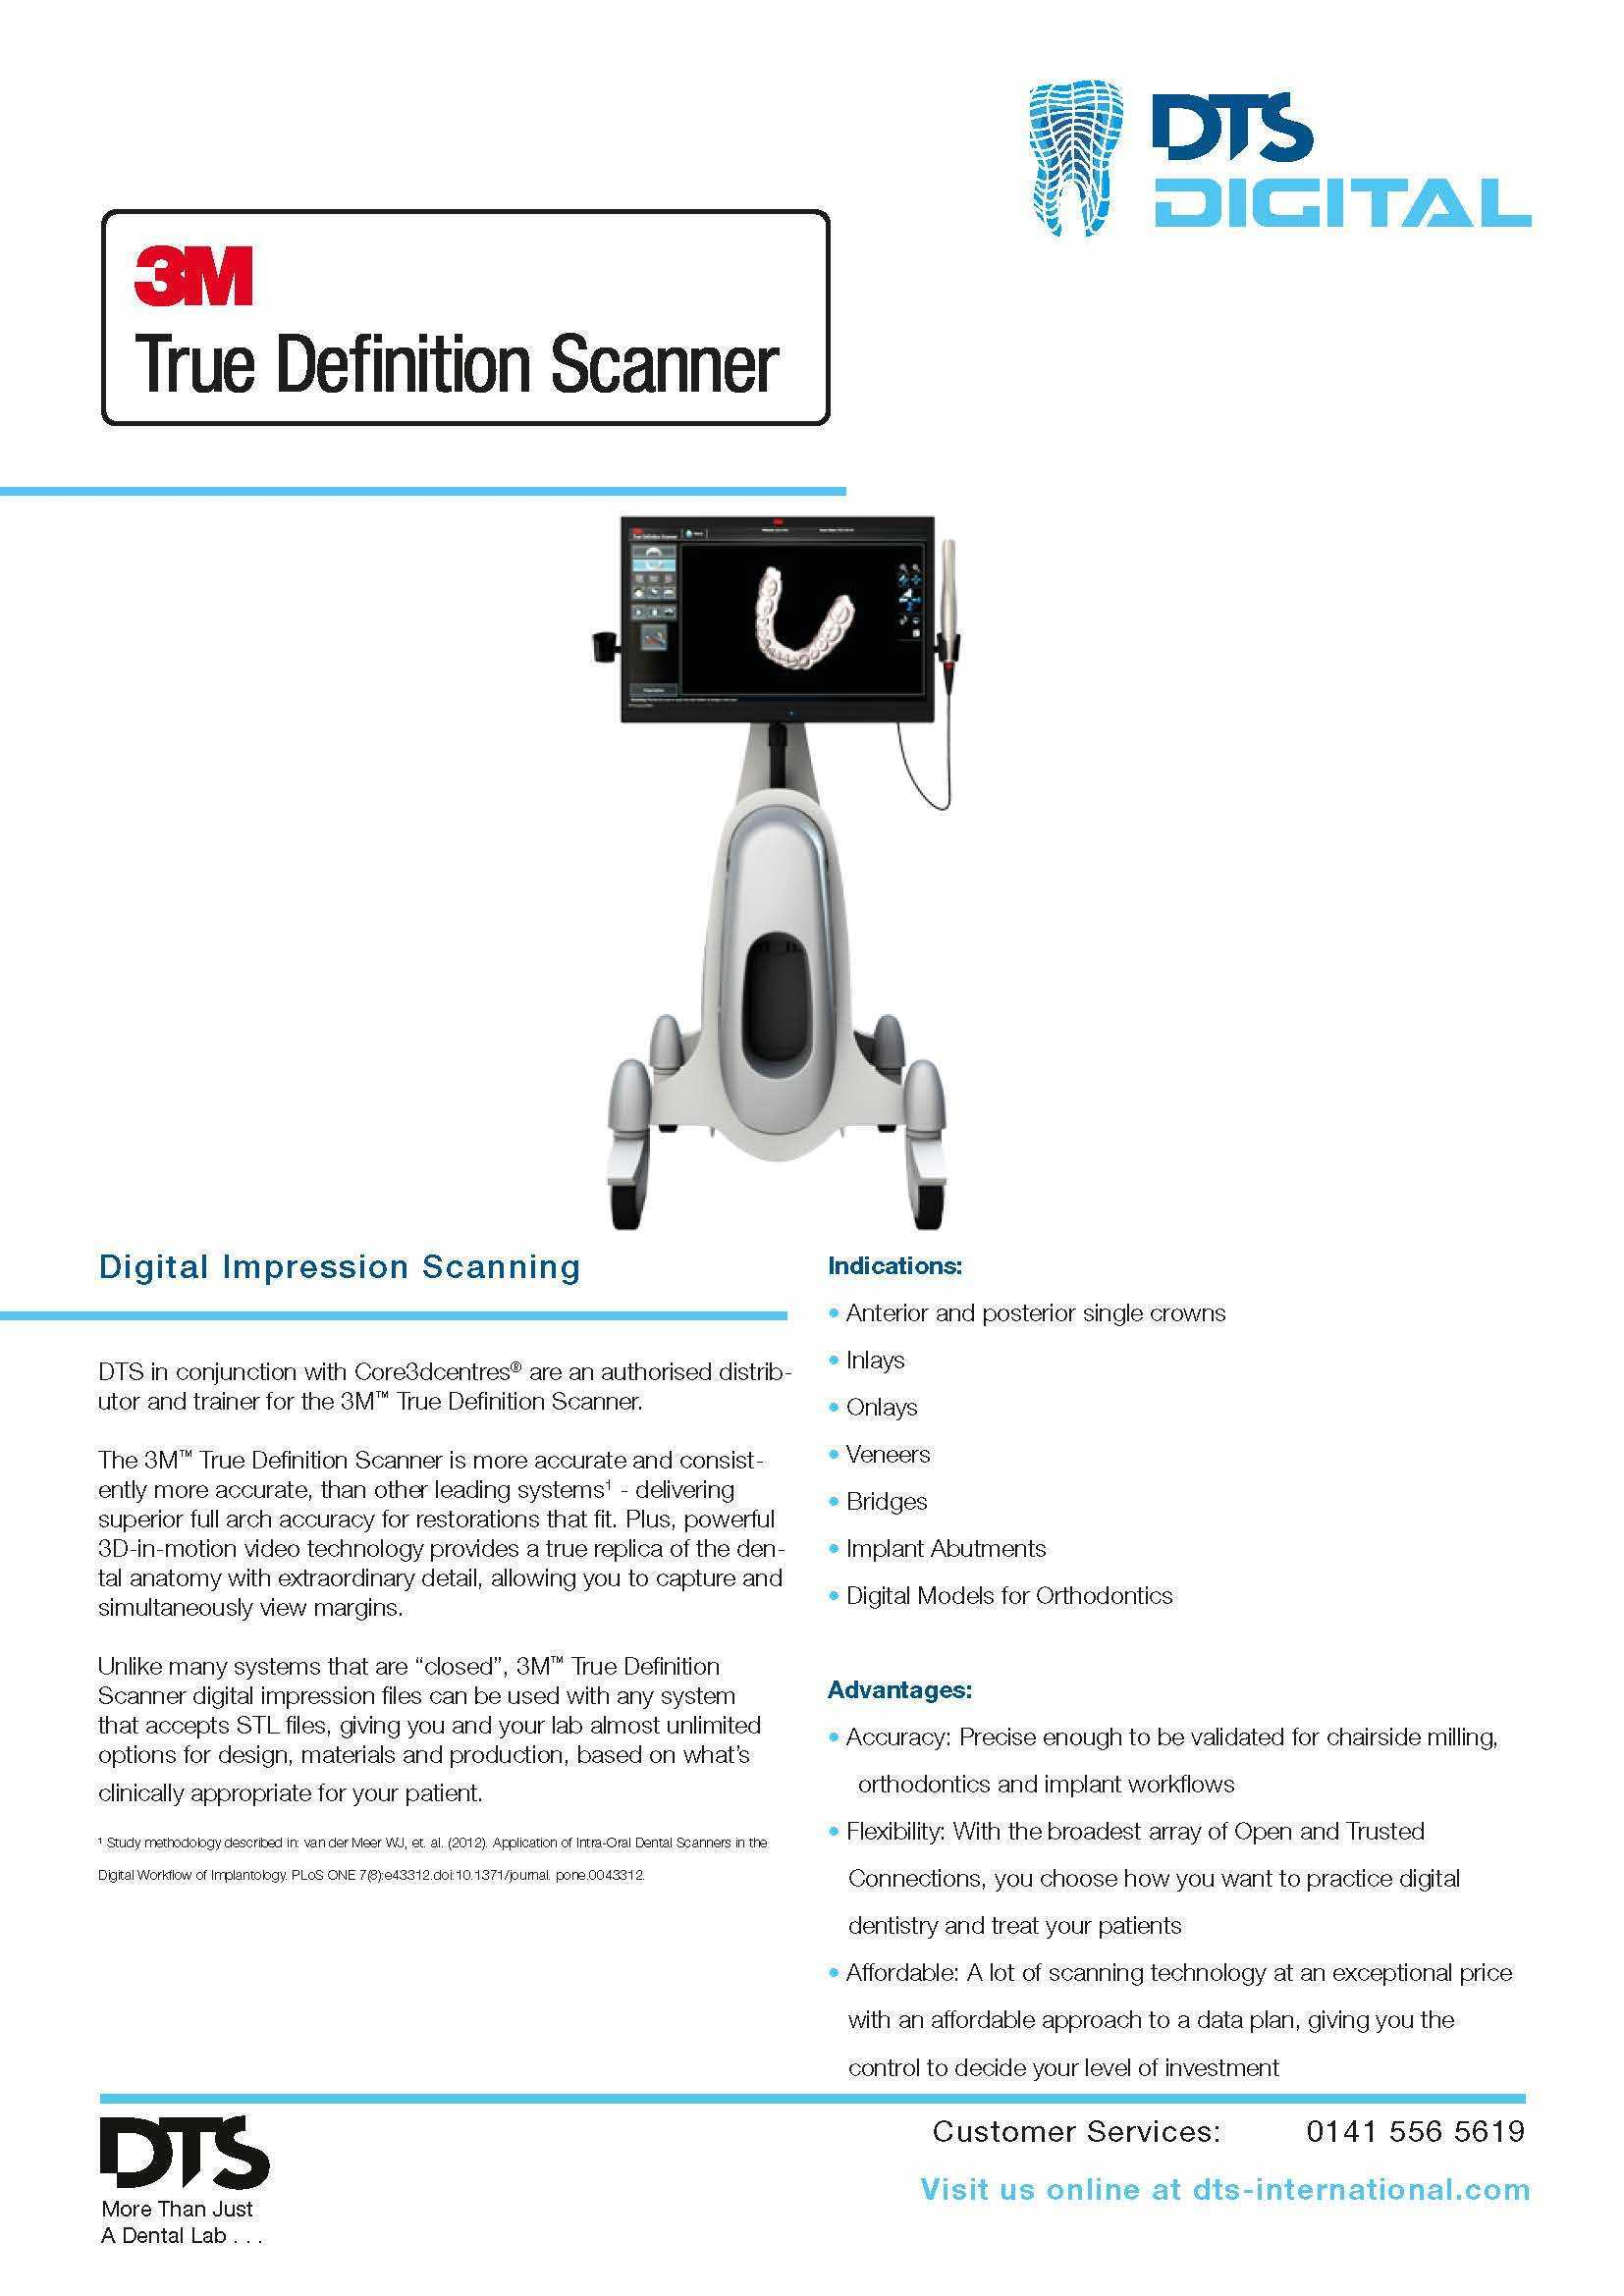 3M True Definition Intra-oral Scanner